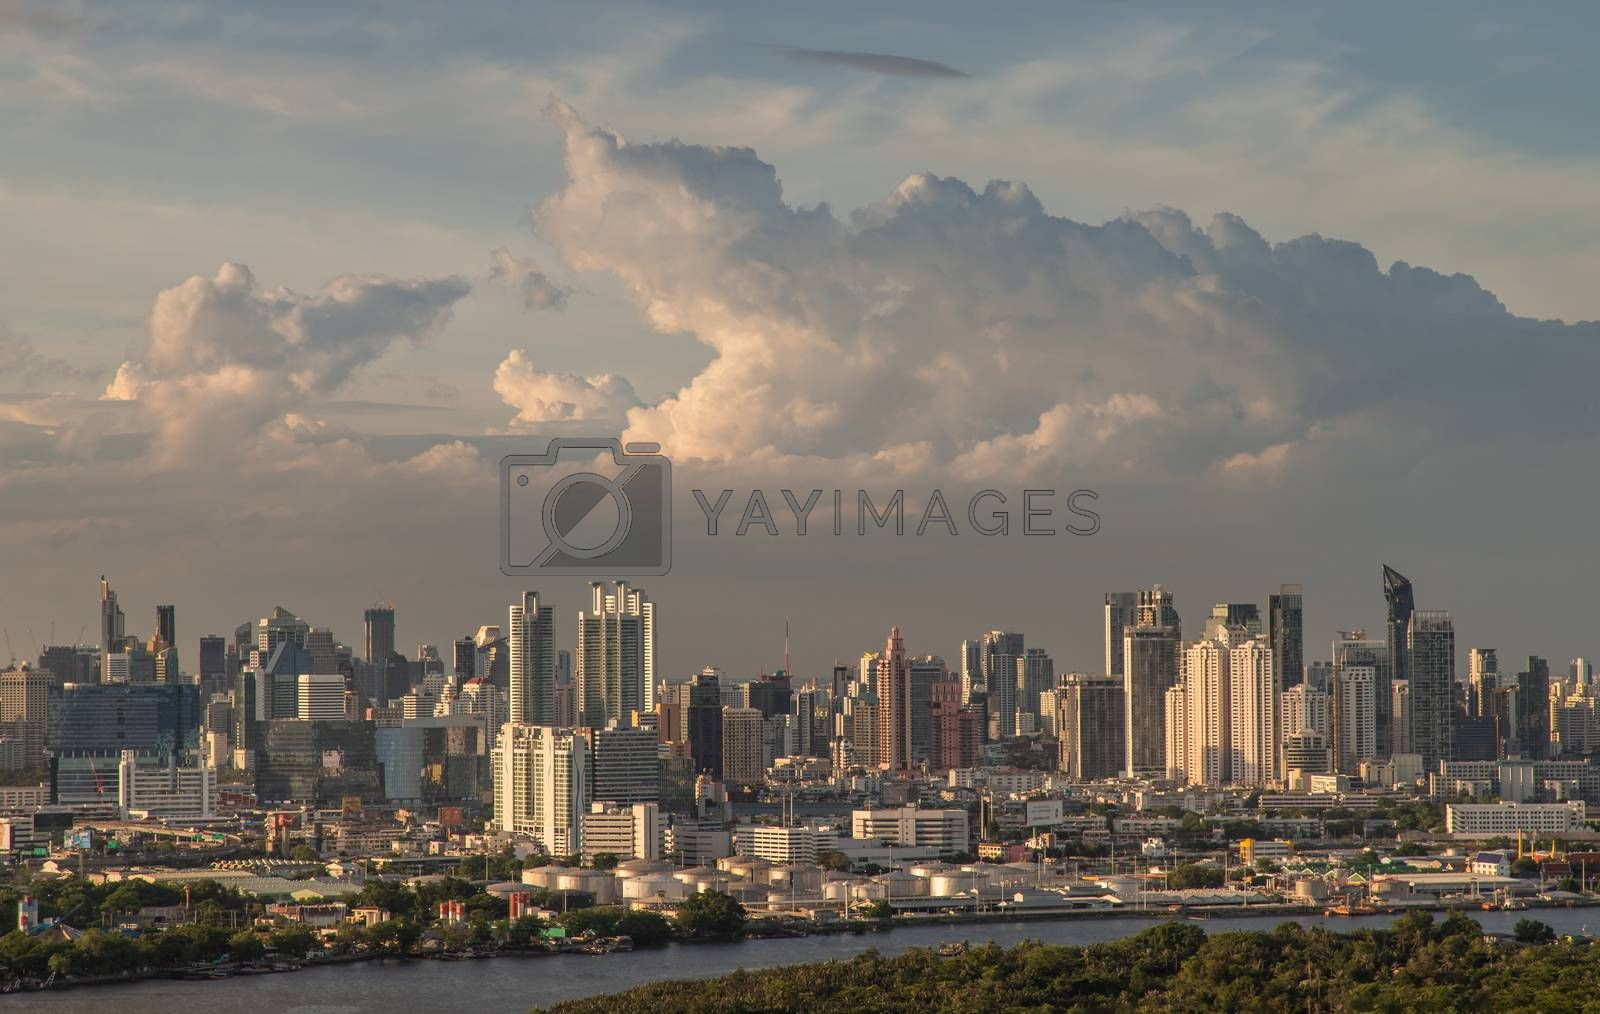 Bangkok, Thailand - Jun 30, 2020 : City view of Bangkok before the sun rises creates energetic feeling to get ready for the day waiting ahead. Selective focus.